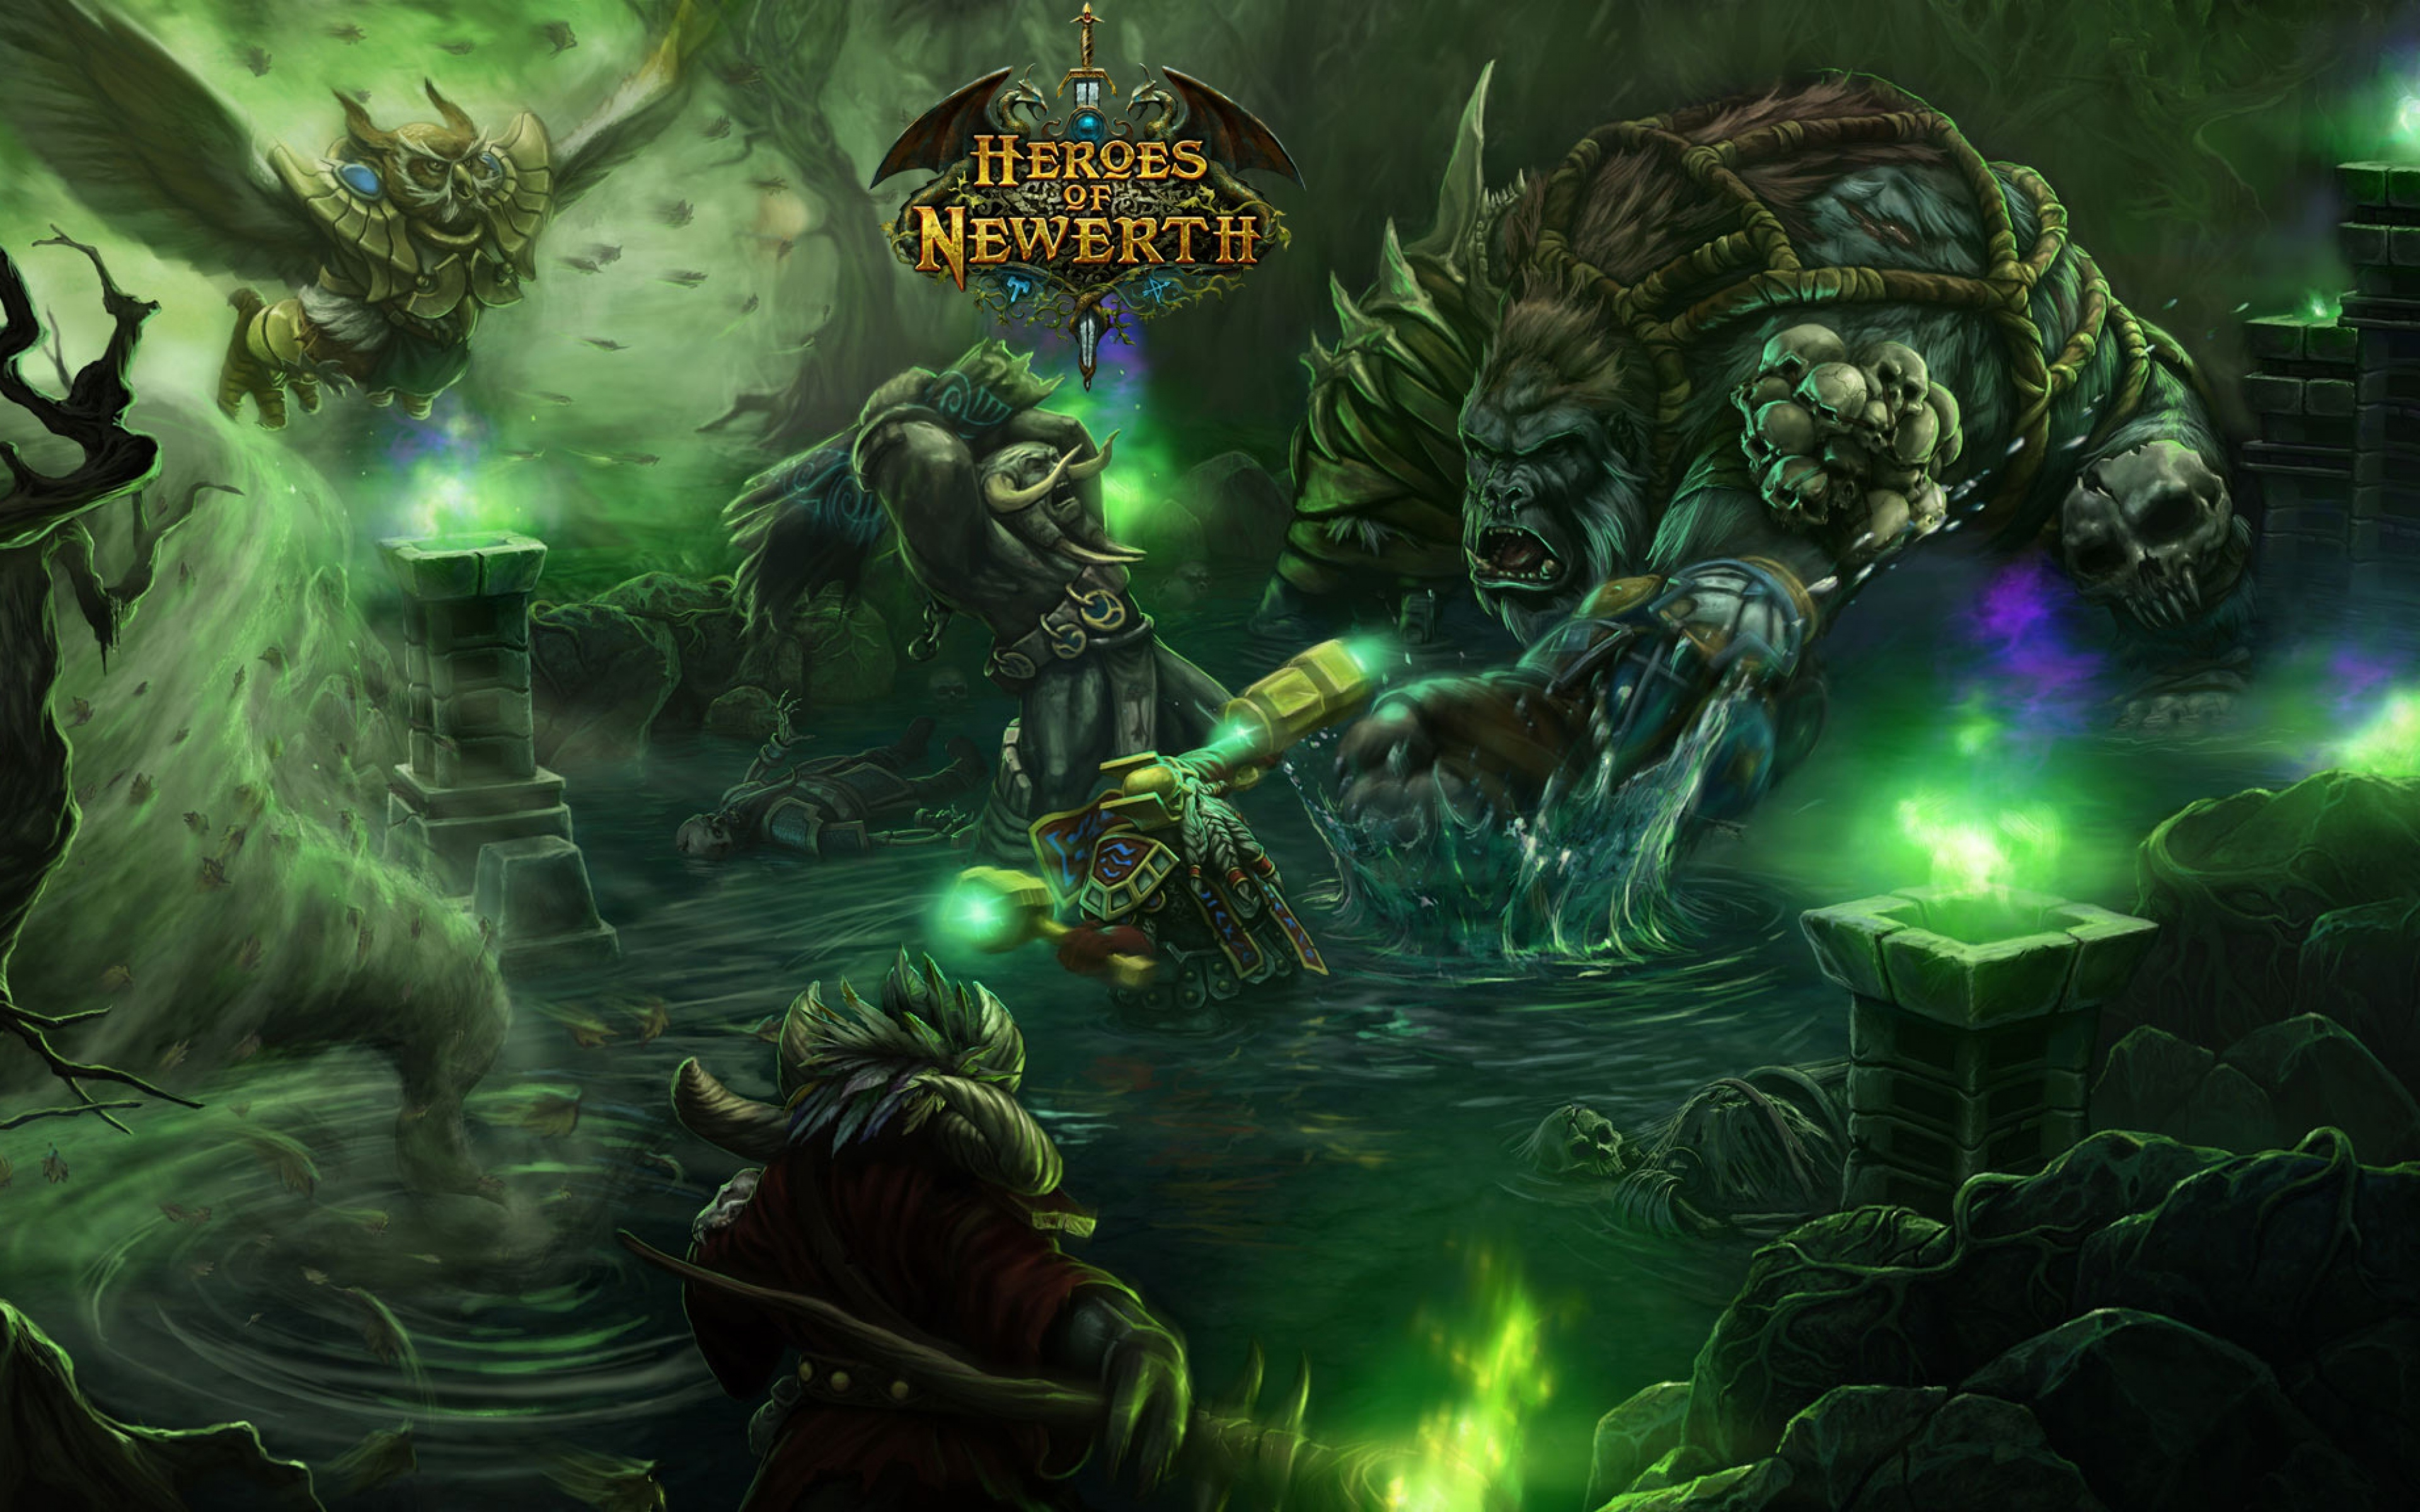 3840x2400 Wallpaper world of warcraft heroes of newerth characters 3840x2400